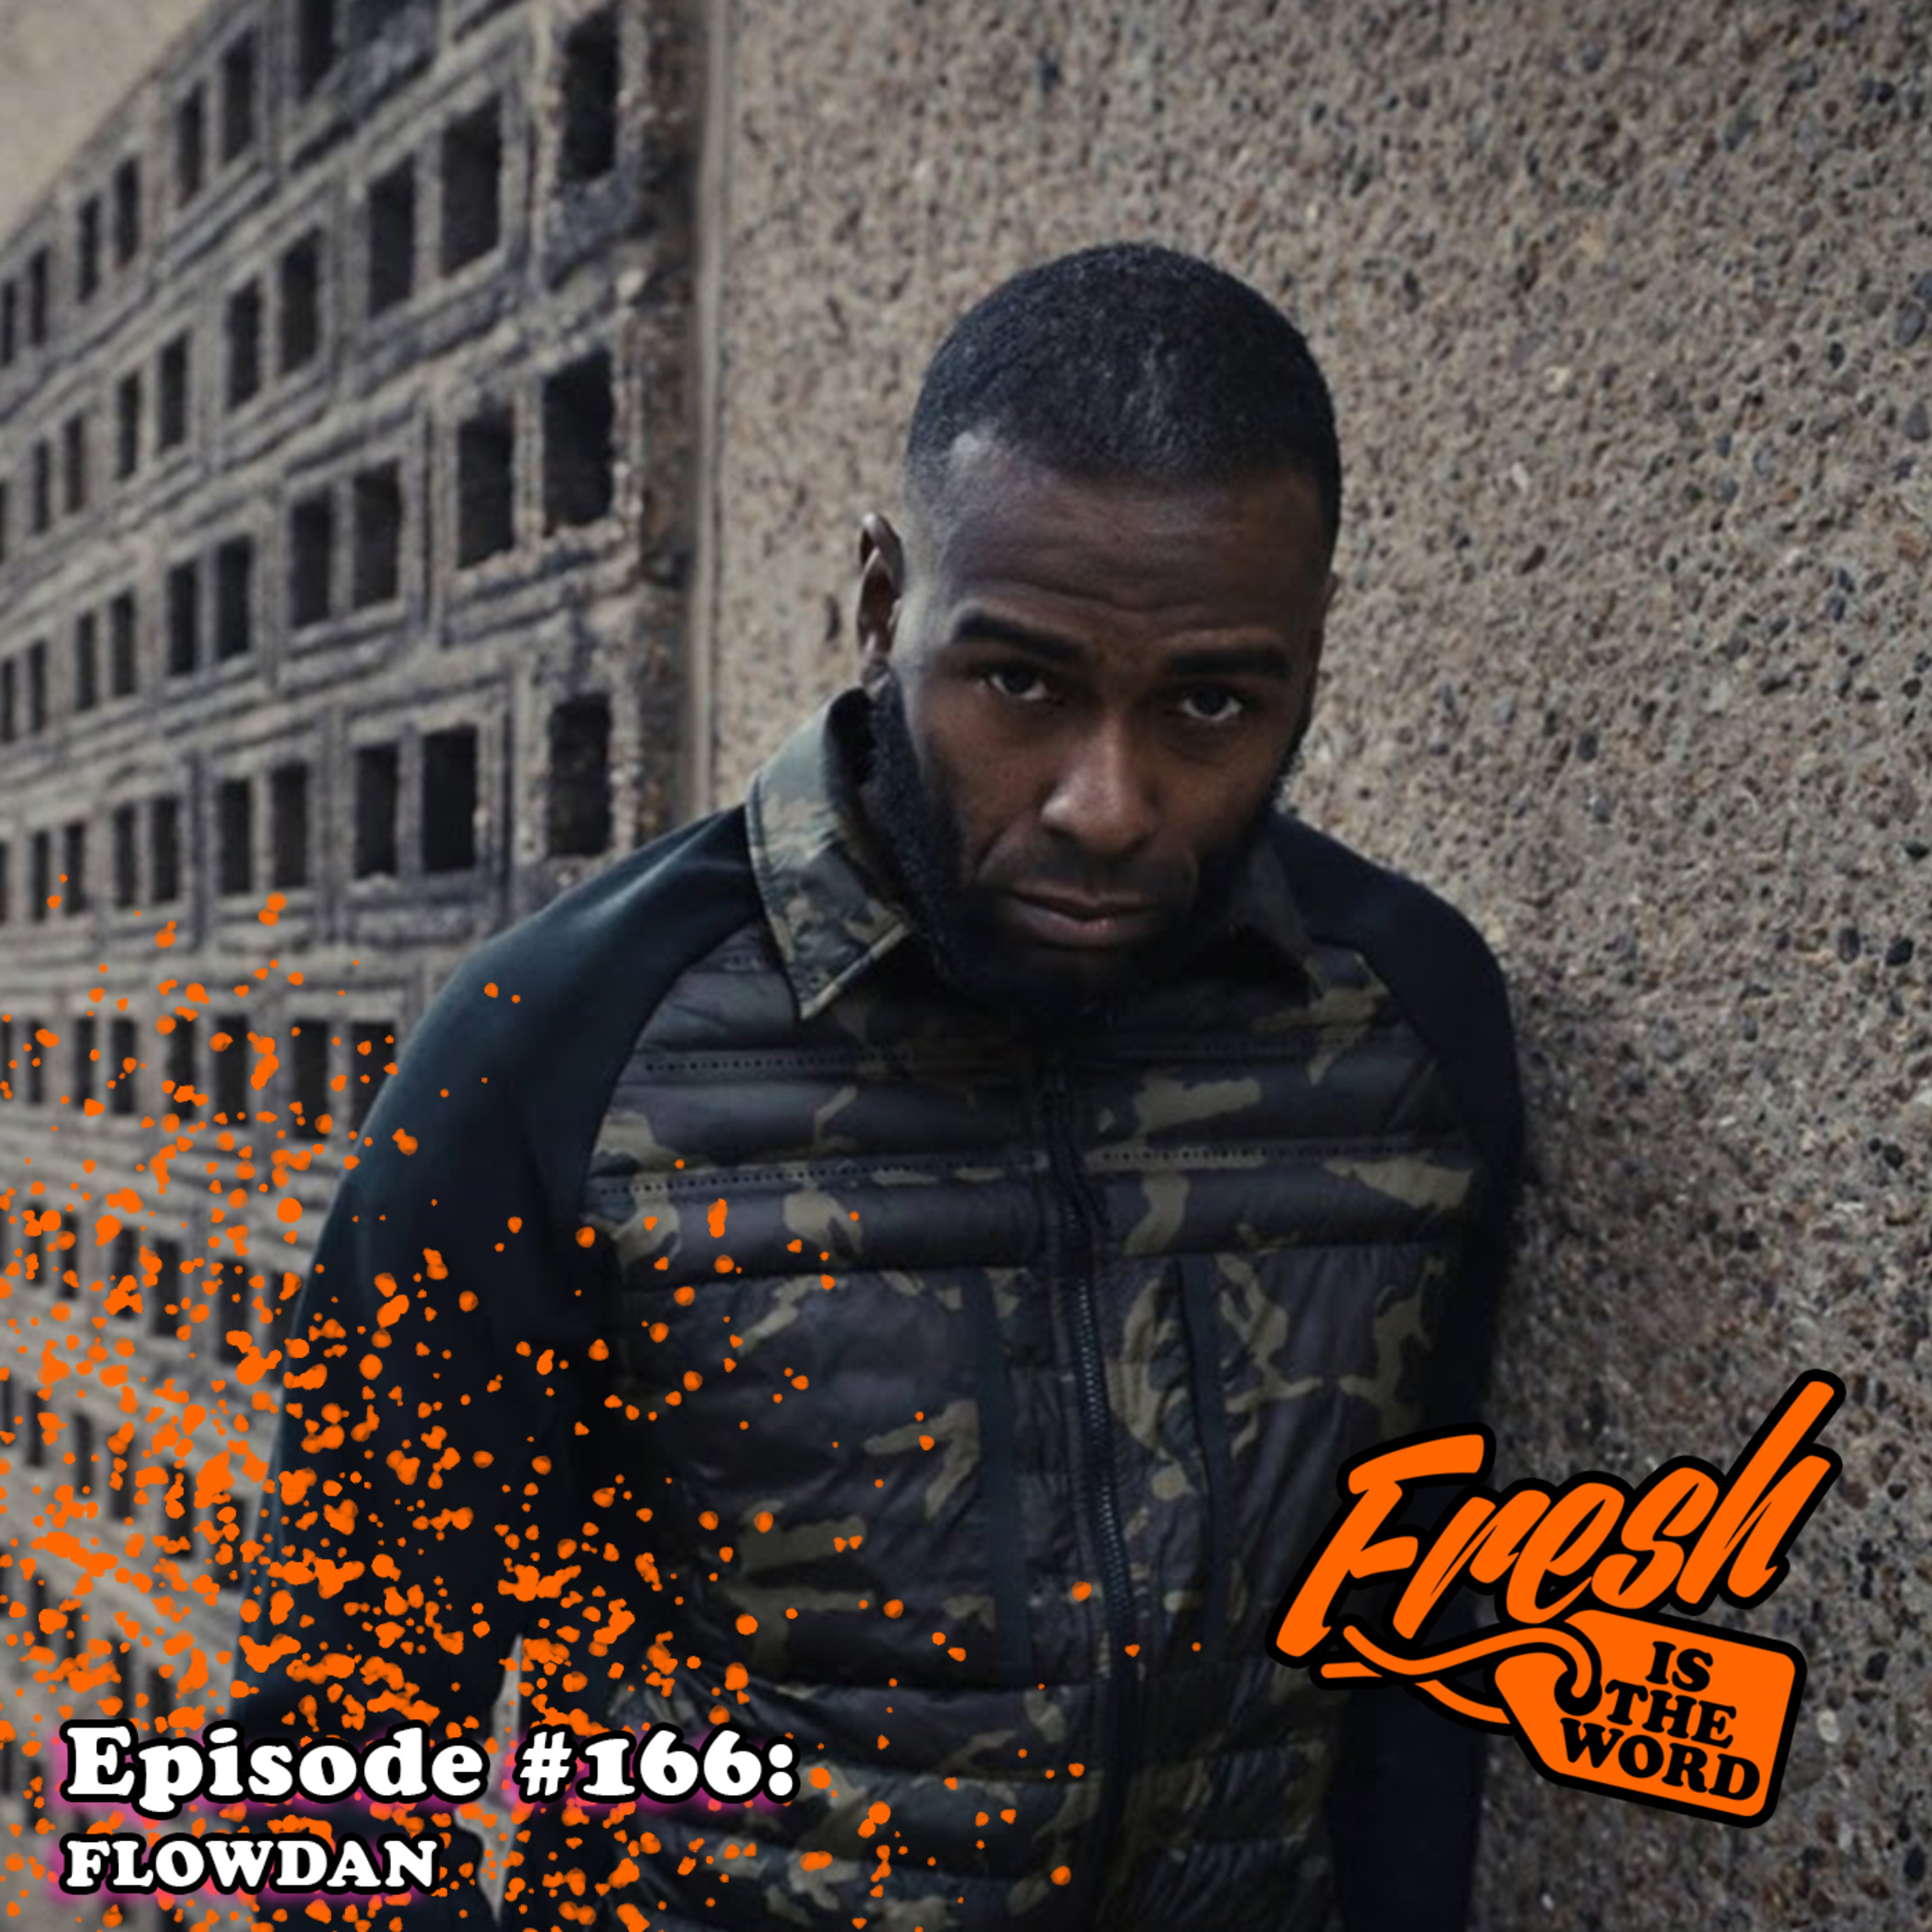 """Episode #166: Flowdan – UK Grime Emcee, Roll Deep Crew, New Solo Album """"Full Metal Jacket"""" Out Now on Tru Thoughts"""